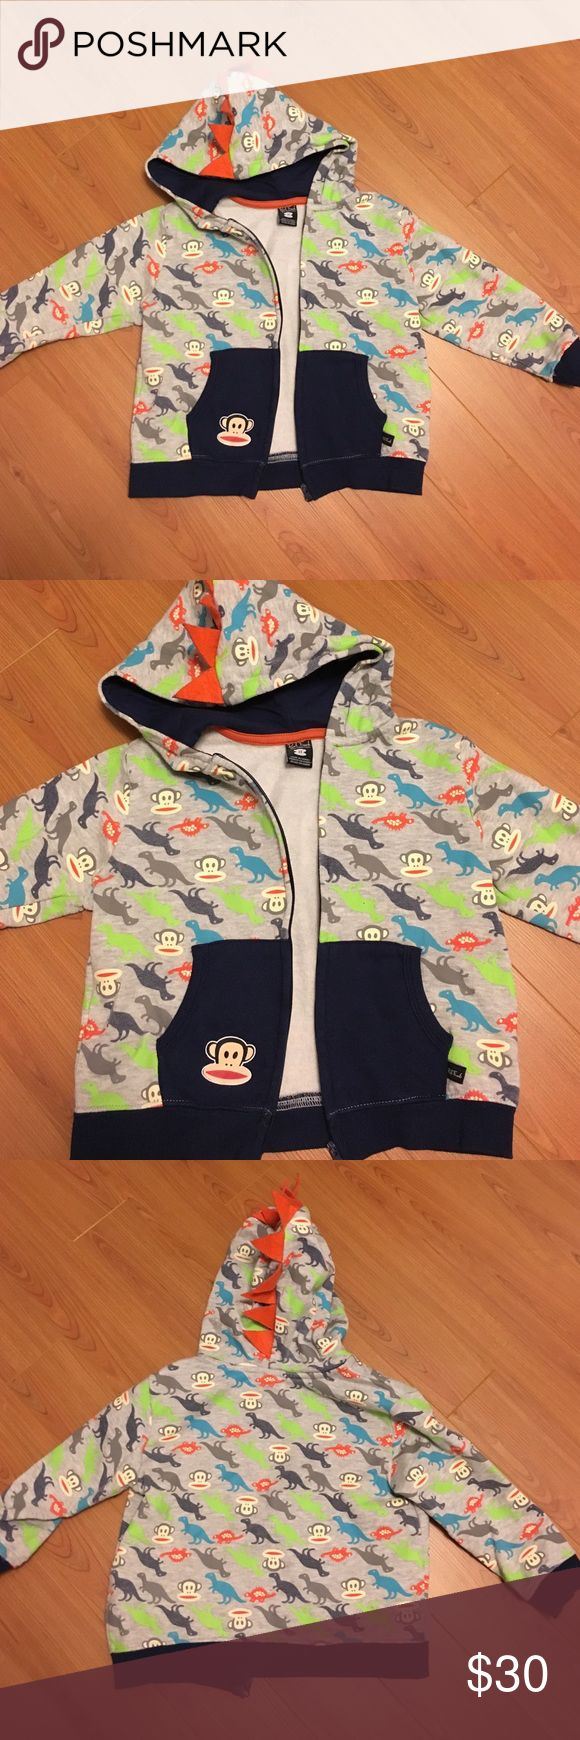 Paul Frank dinosaur hoodie An original Paul Frank hoodie for toddler boys. Has monkey faces and pictures of dinosaurs all over. Hood itself has orange dinosaur spikes to add to the effect. Paul Frank Shirts & Tops Sweatshirts & Hoodies